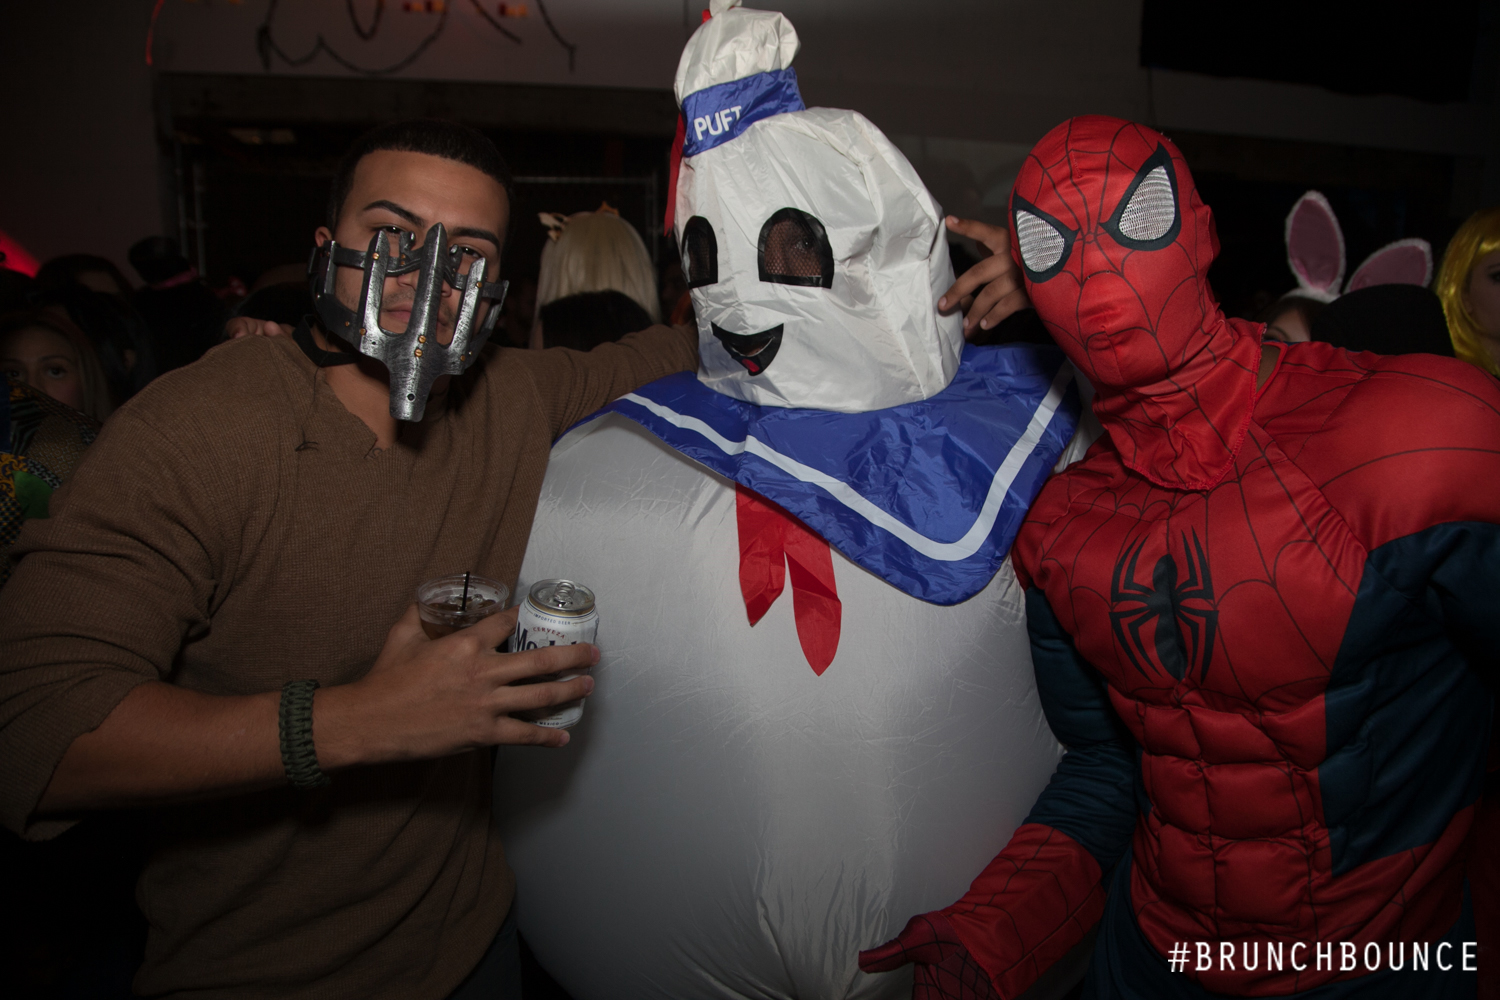 brunch-bounce-x-adidas-originals-halloween-103115_22766301561_o.jpg